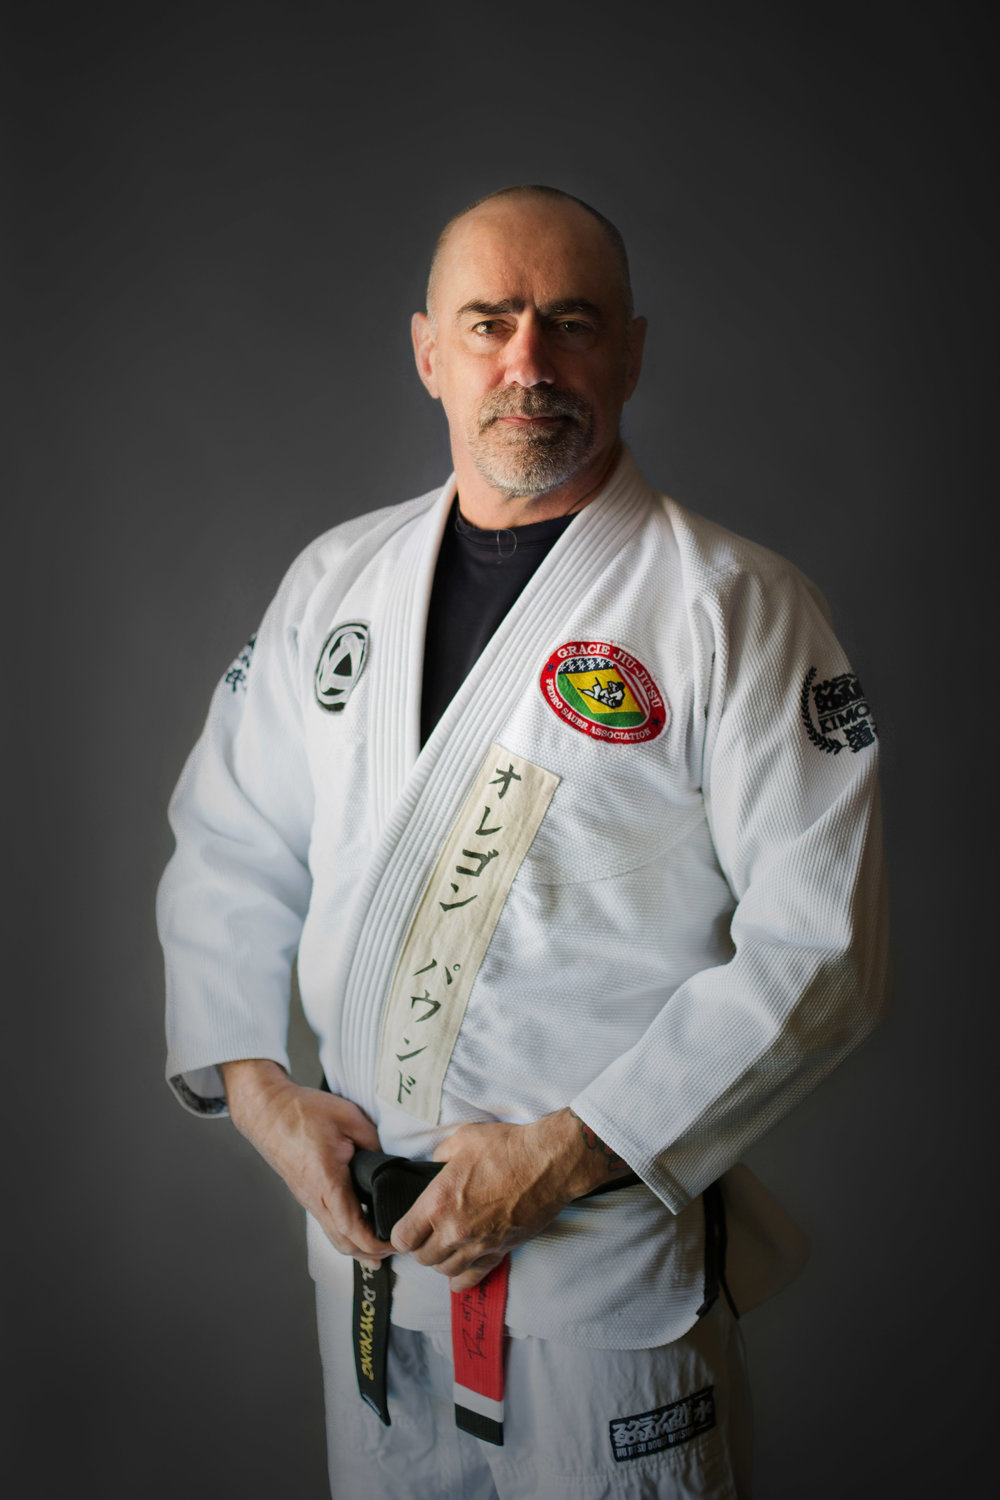 130 Black Belt portrait - 1.jpg